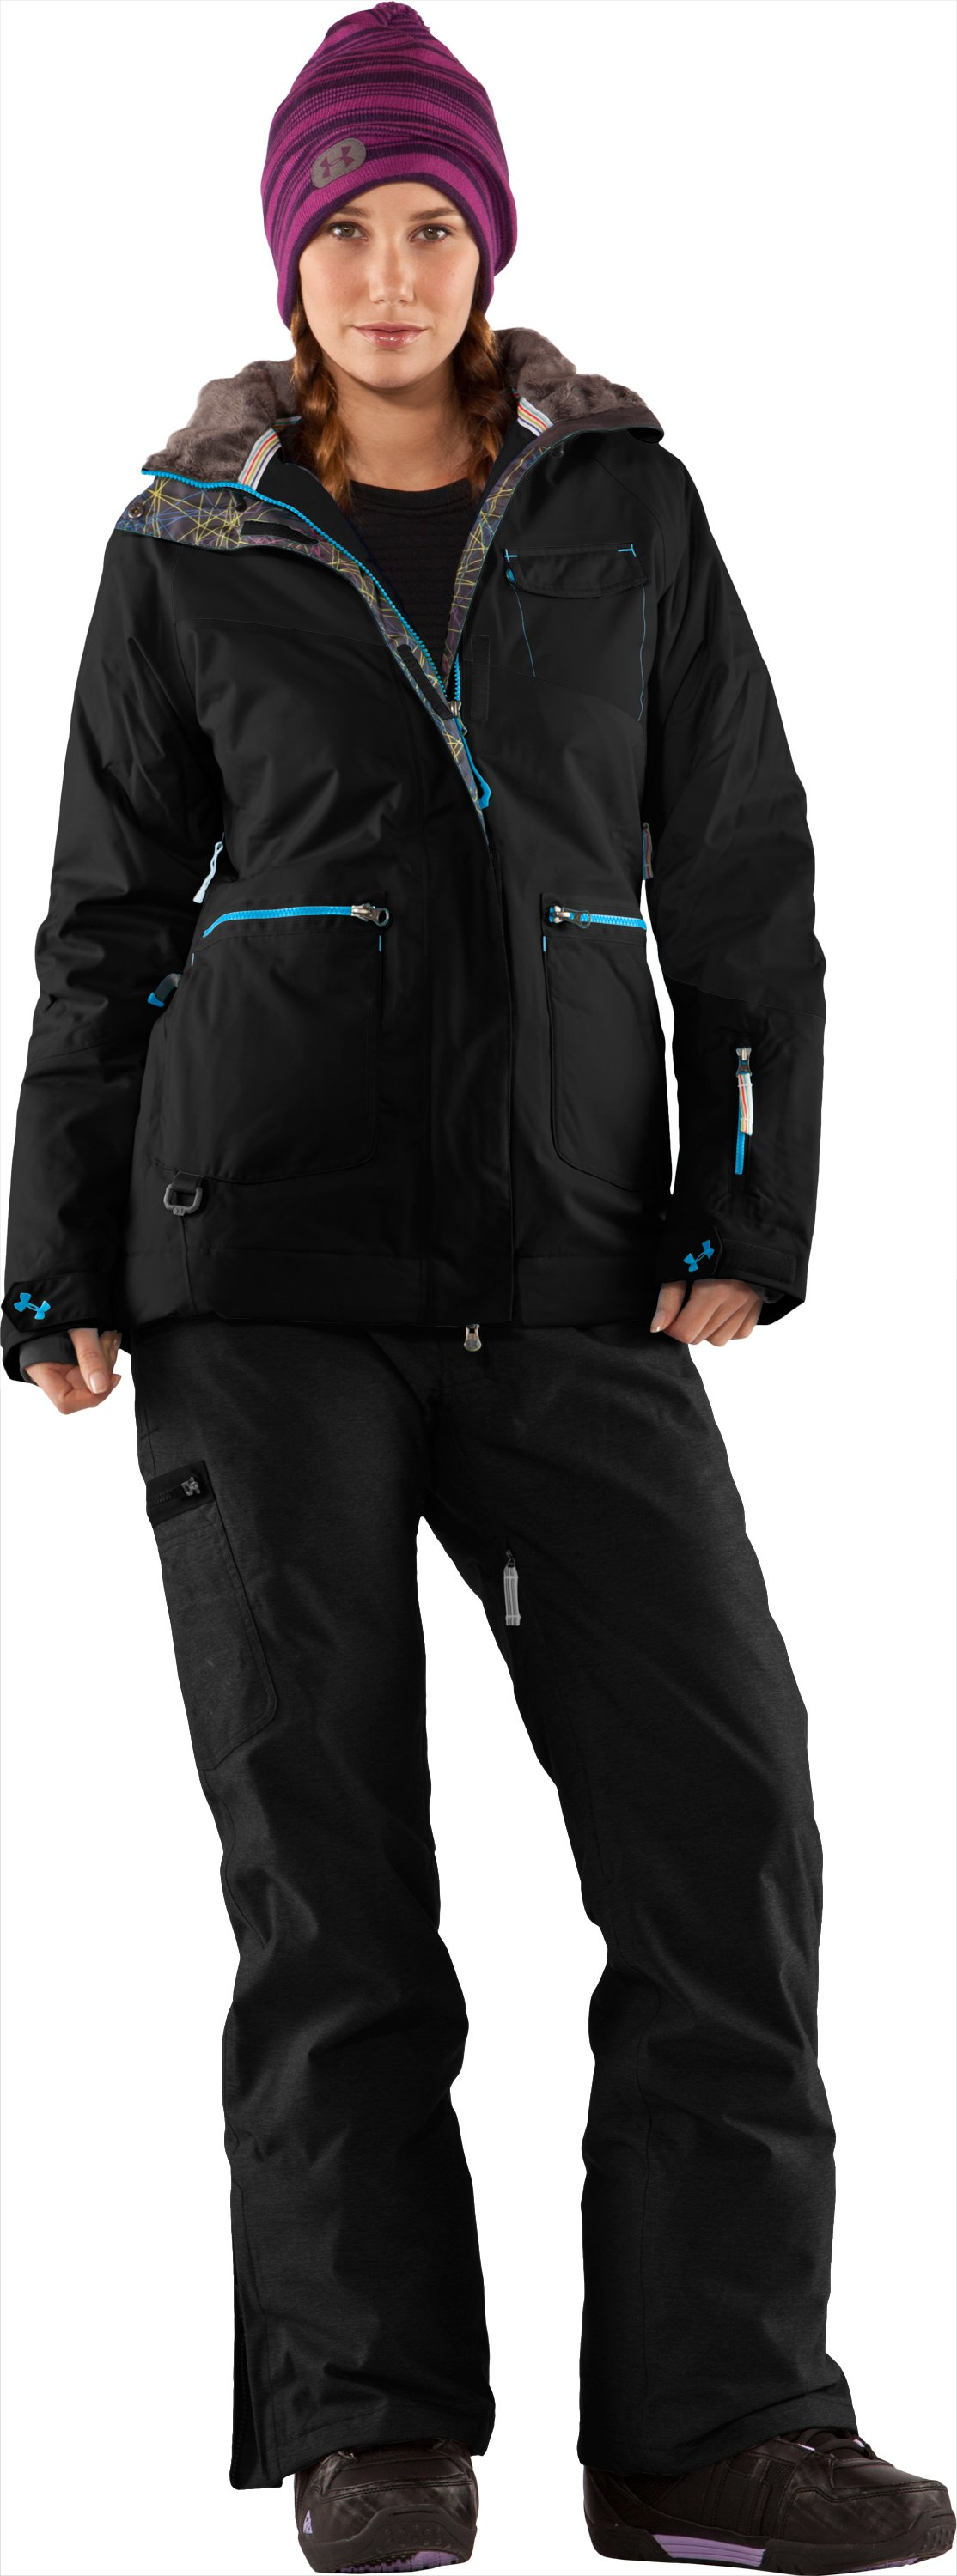 Women's Blar Waterproof Ski Jacket, Black , Front